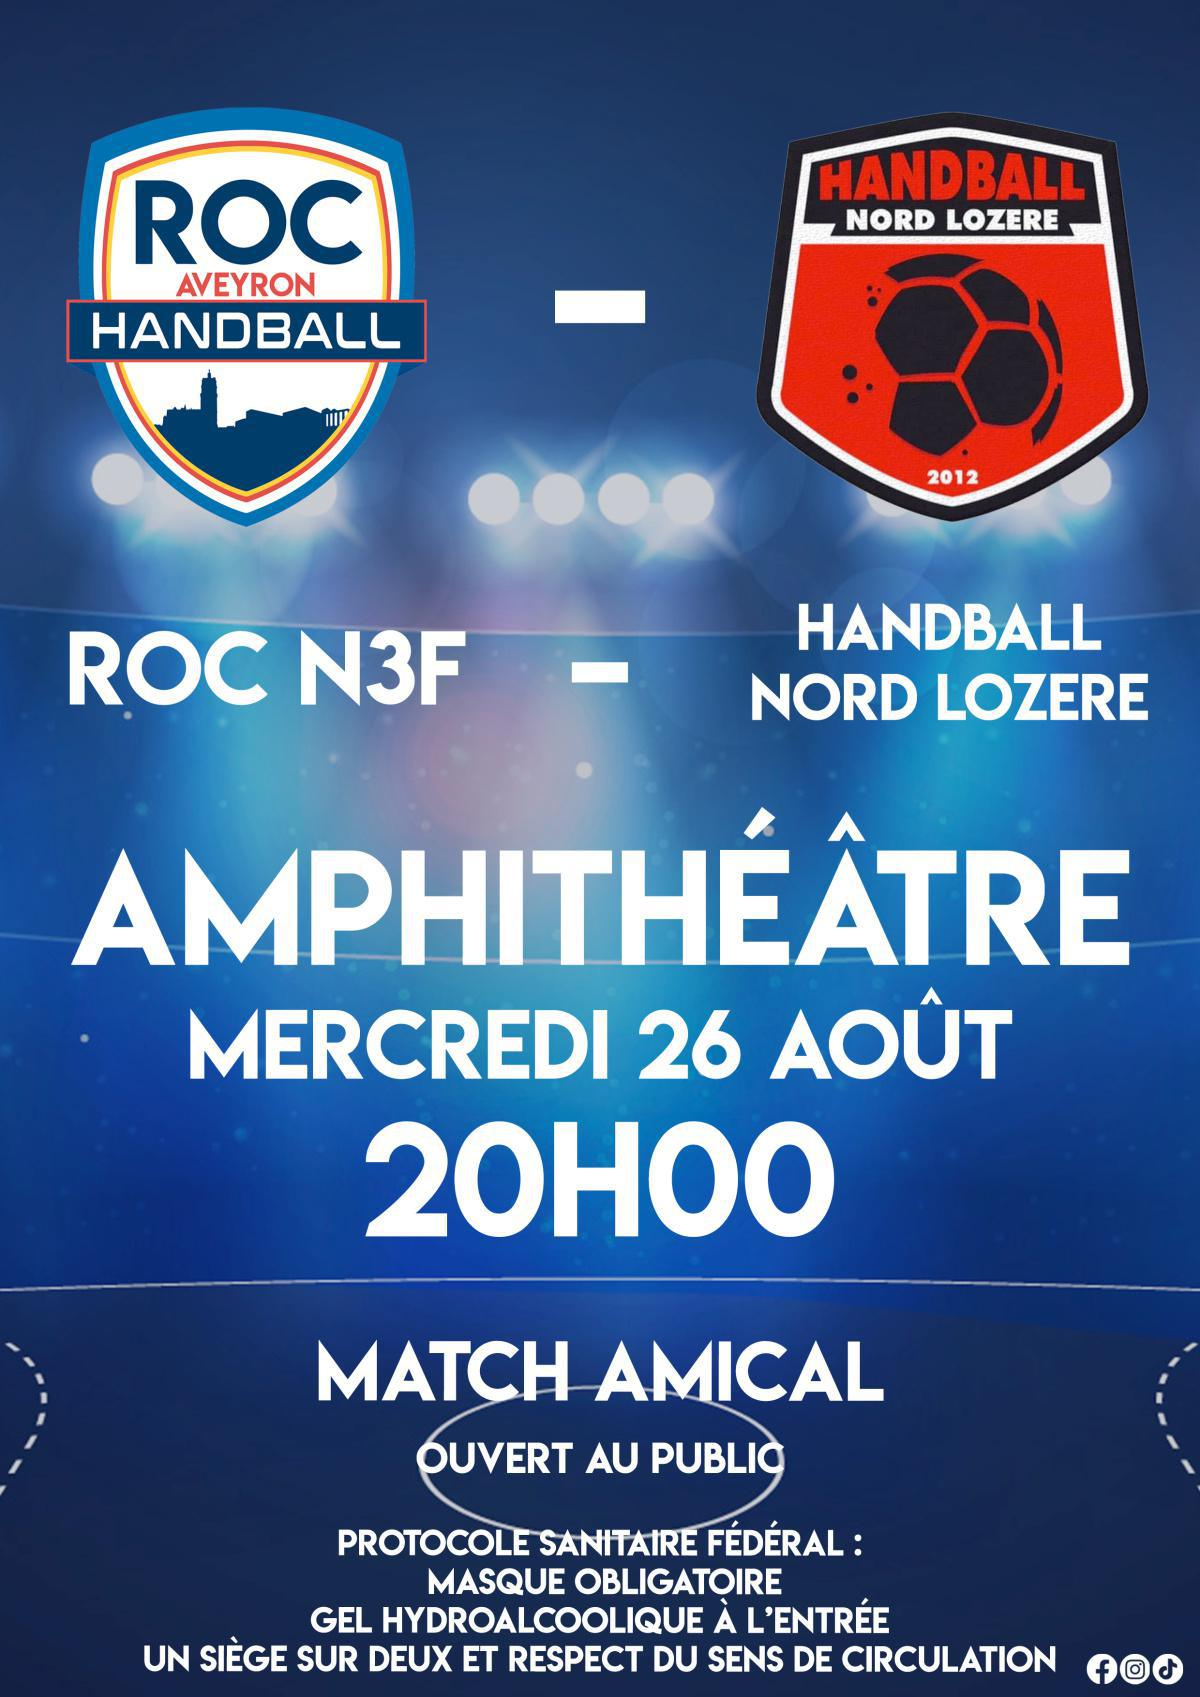 Match Amical du ROC N3F